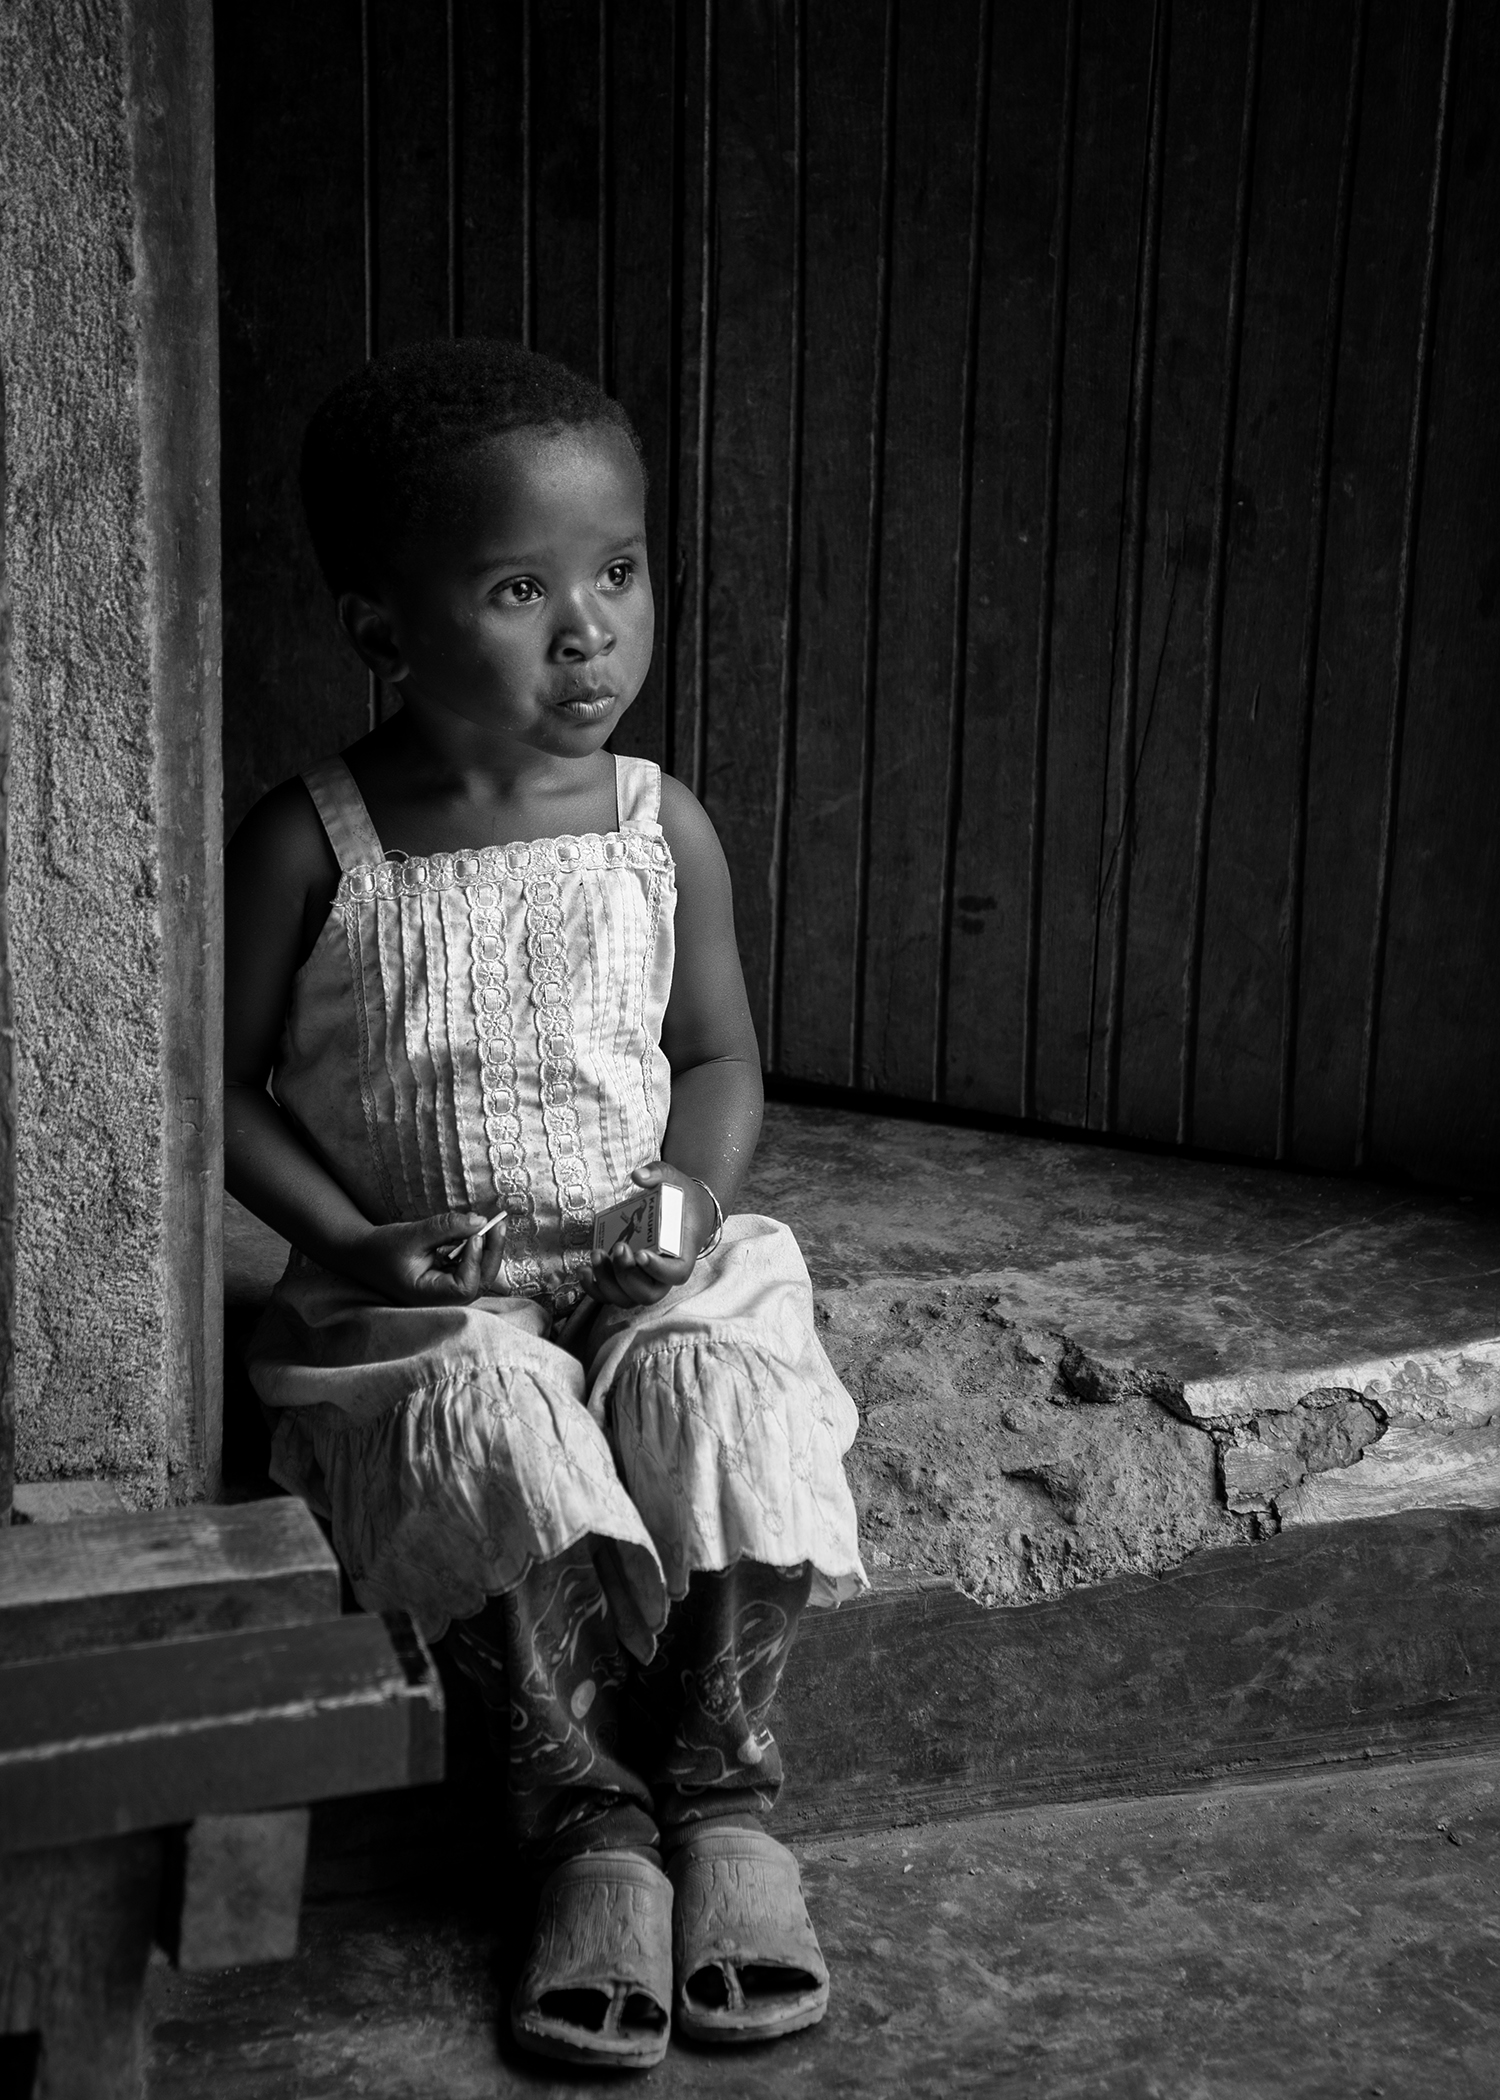 The daughter of a coffee farmer sits on the mud step outside her hut